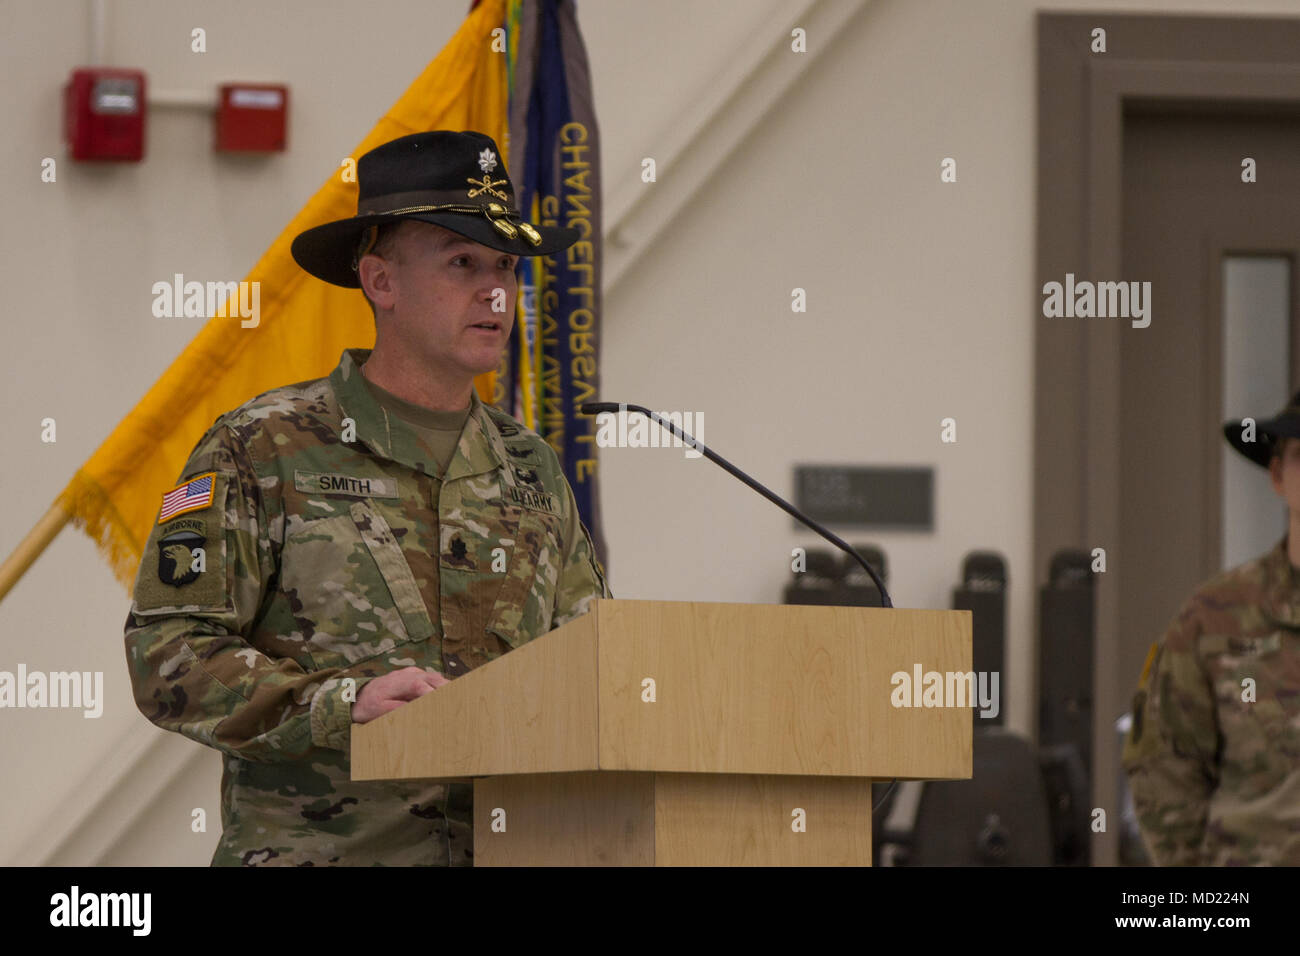 U.S. Army Squadron commander Lt. Col. Derek Smith from 4th Heavy Attack Reconnaissance Squadron, 6th U.S. Cavalry Regiment bids farewell to outgoing commander of Headquarters and Headquarters Troop, 4-6 HARS Capt. Michael Bruce from Huckabay, Texas, and welcomes Capt. Tatiana Blanc as HHT's new commander. - Stock Image